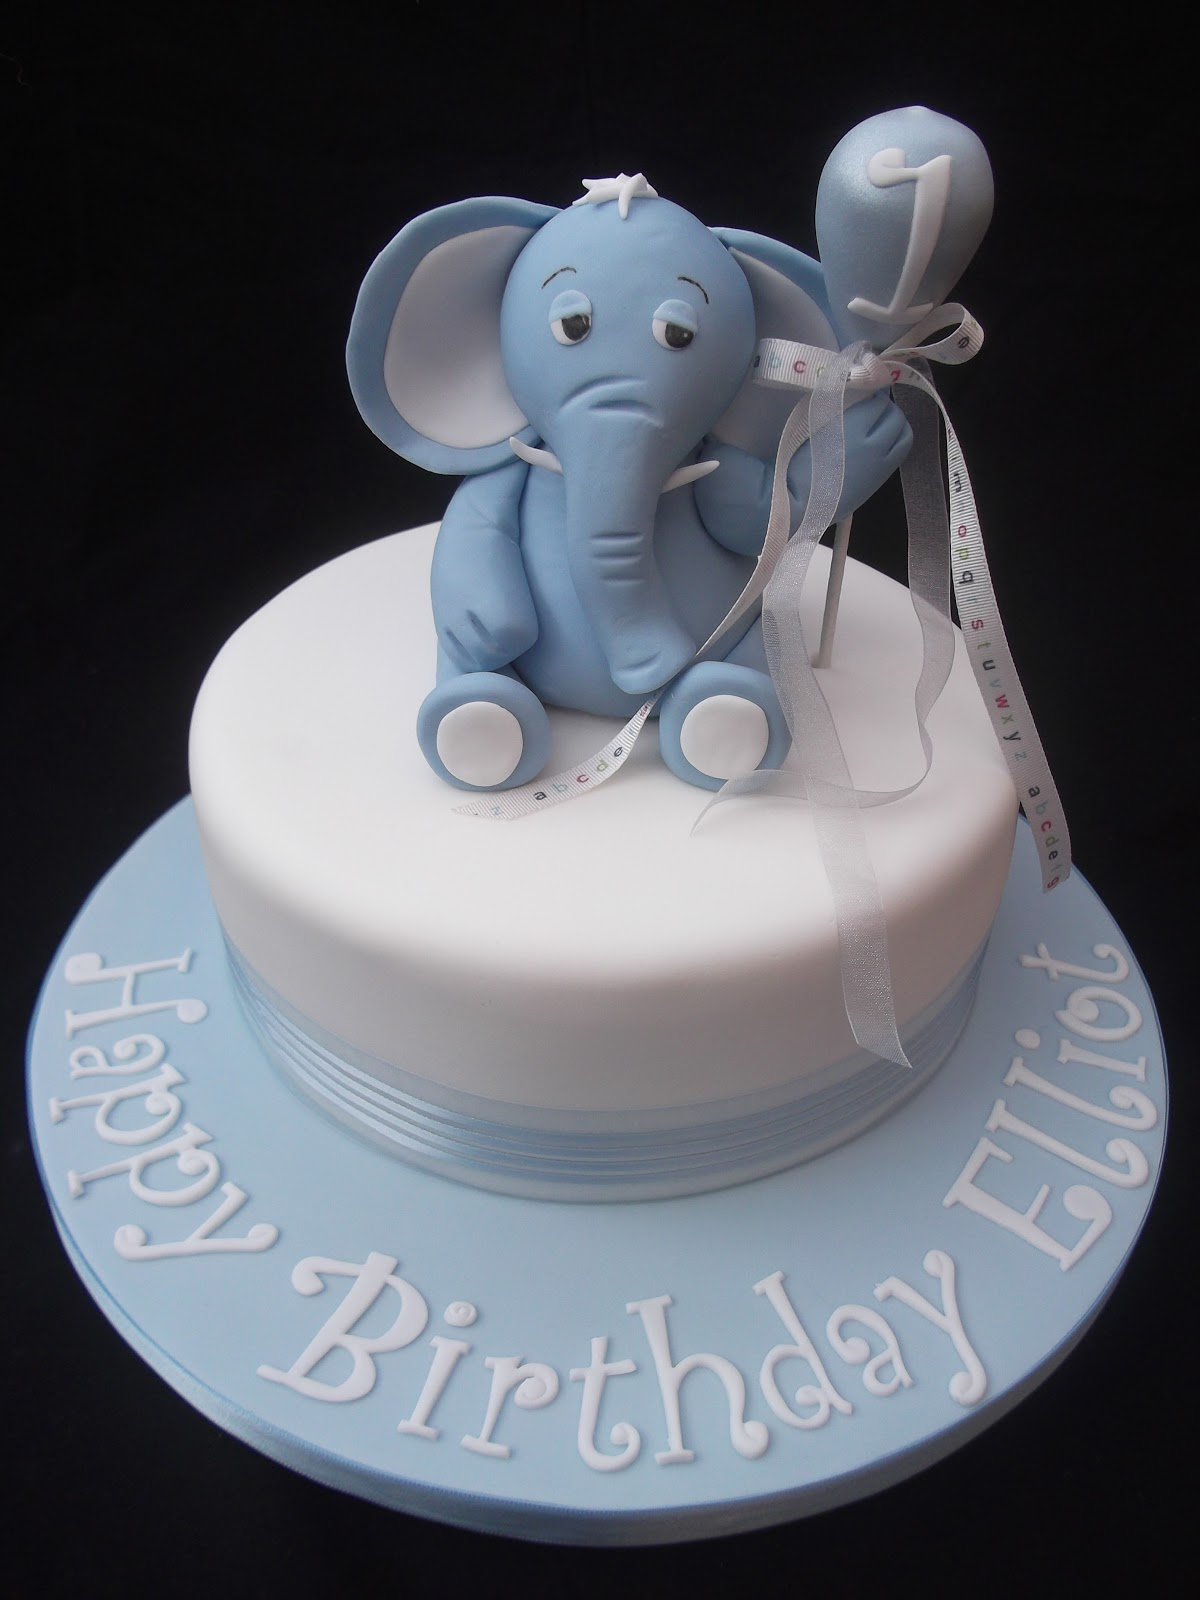 Baby Boy Birthday Cake Elephant Image Inspiration of Cake and